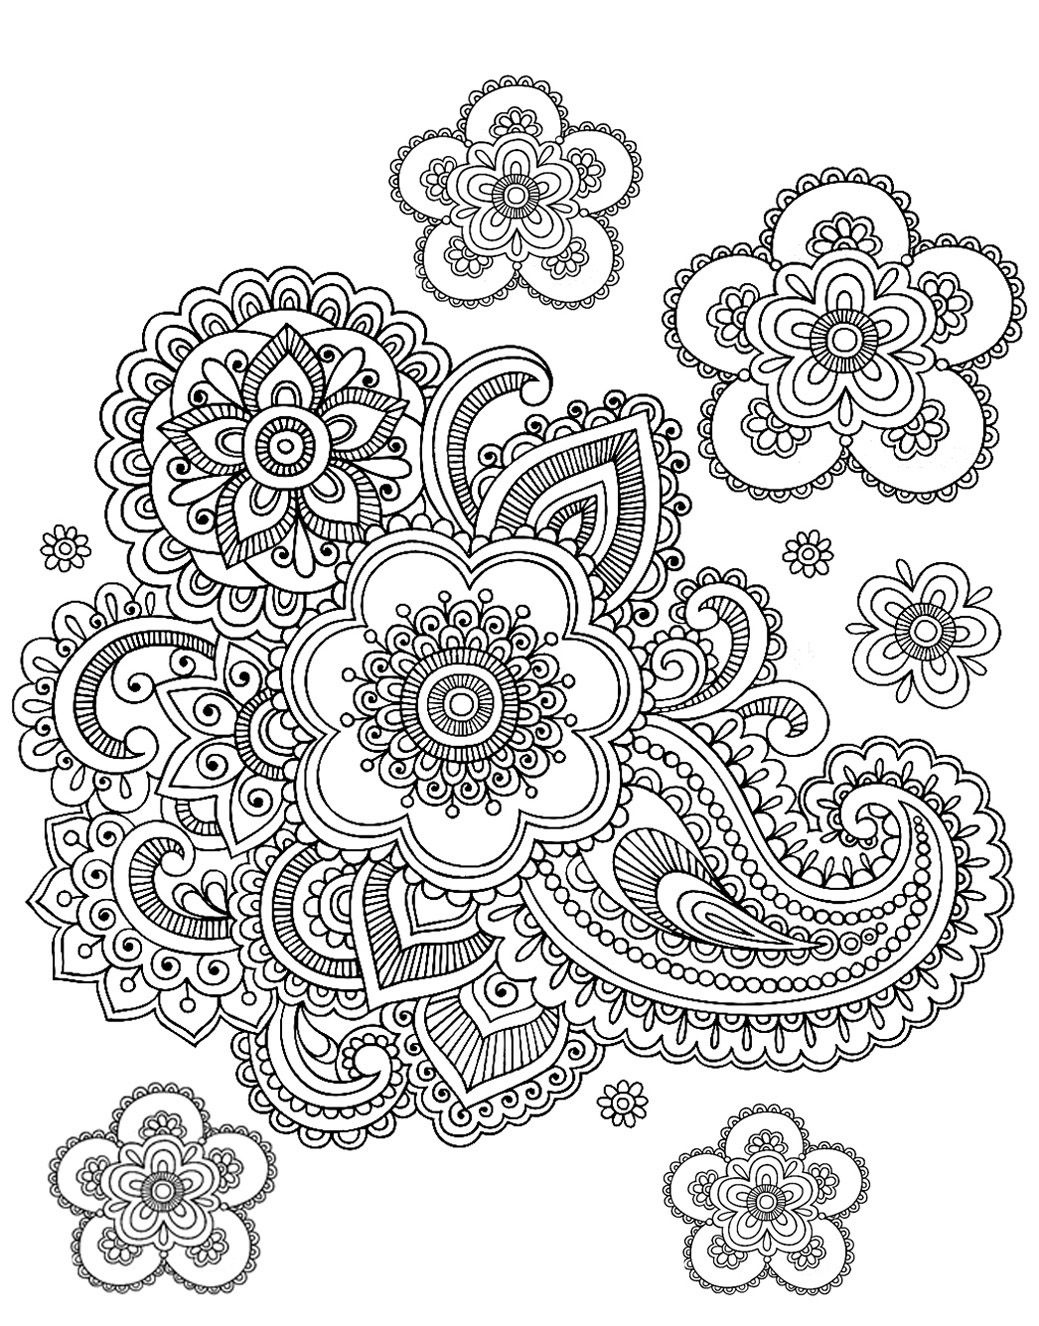 Free Coloring Page Coloring Adult Paisley Difficult Difficult